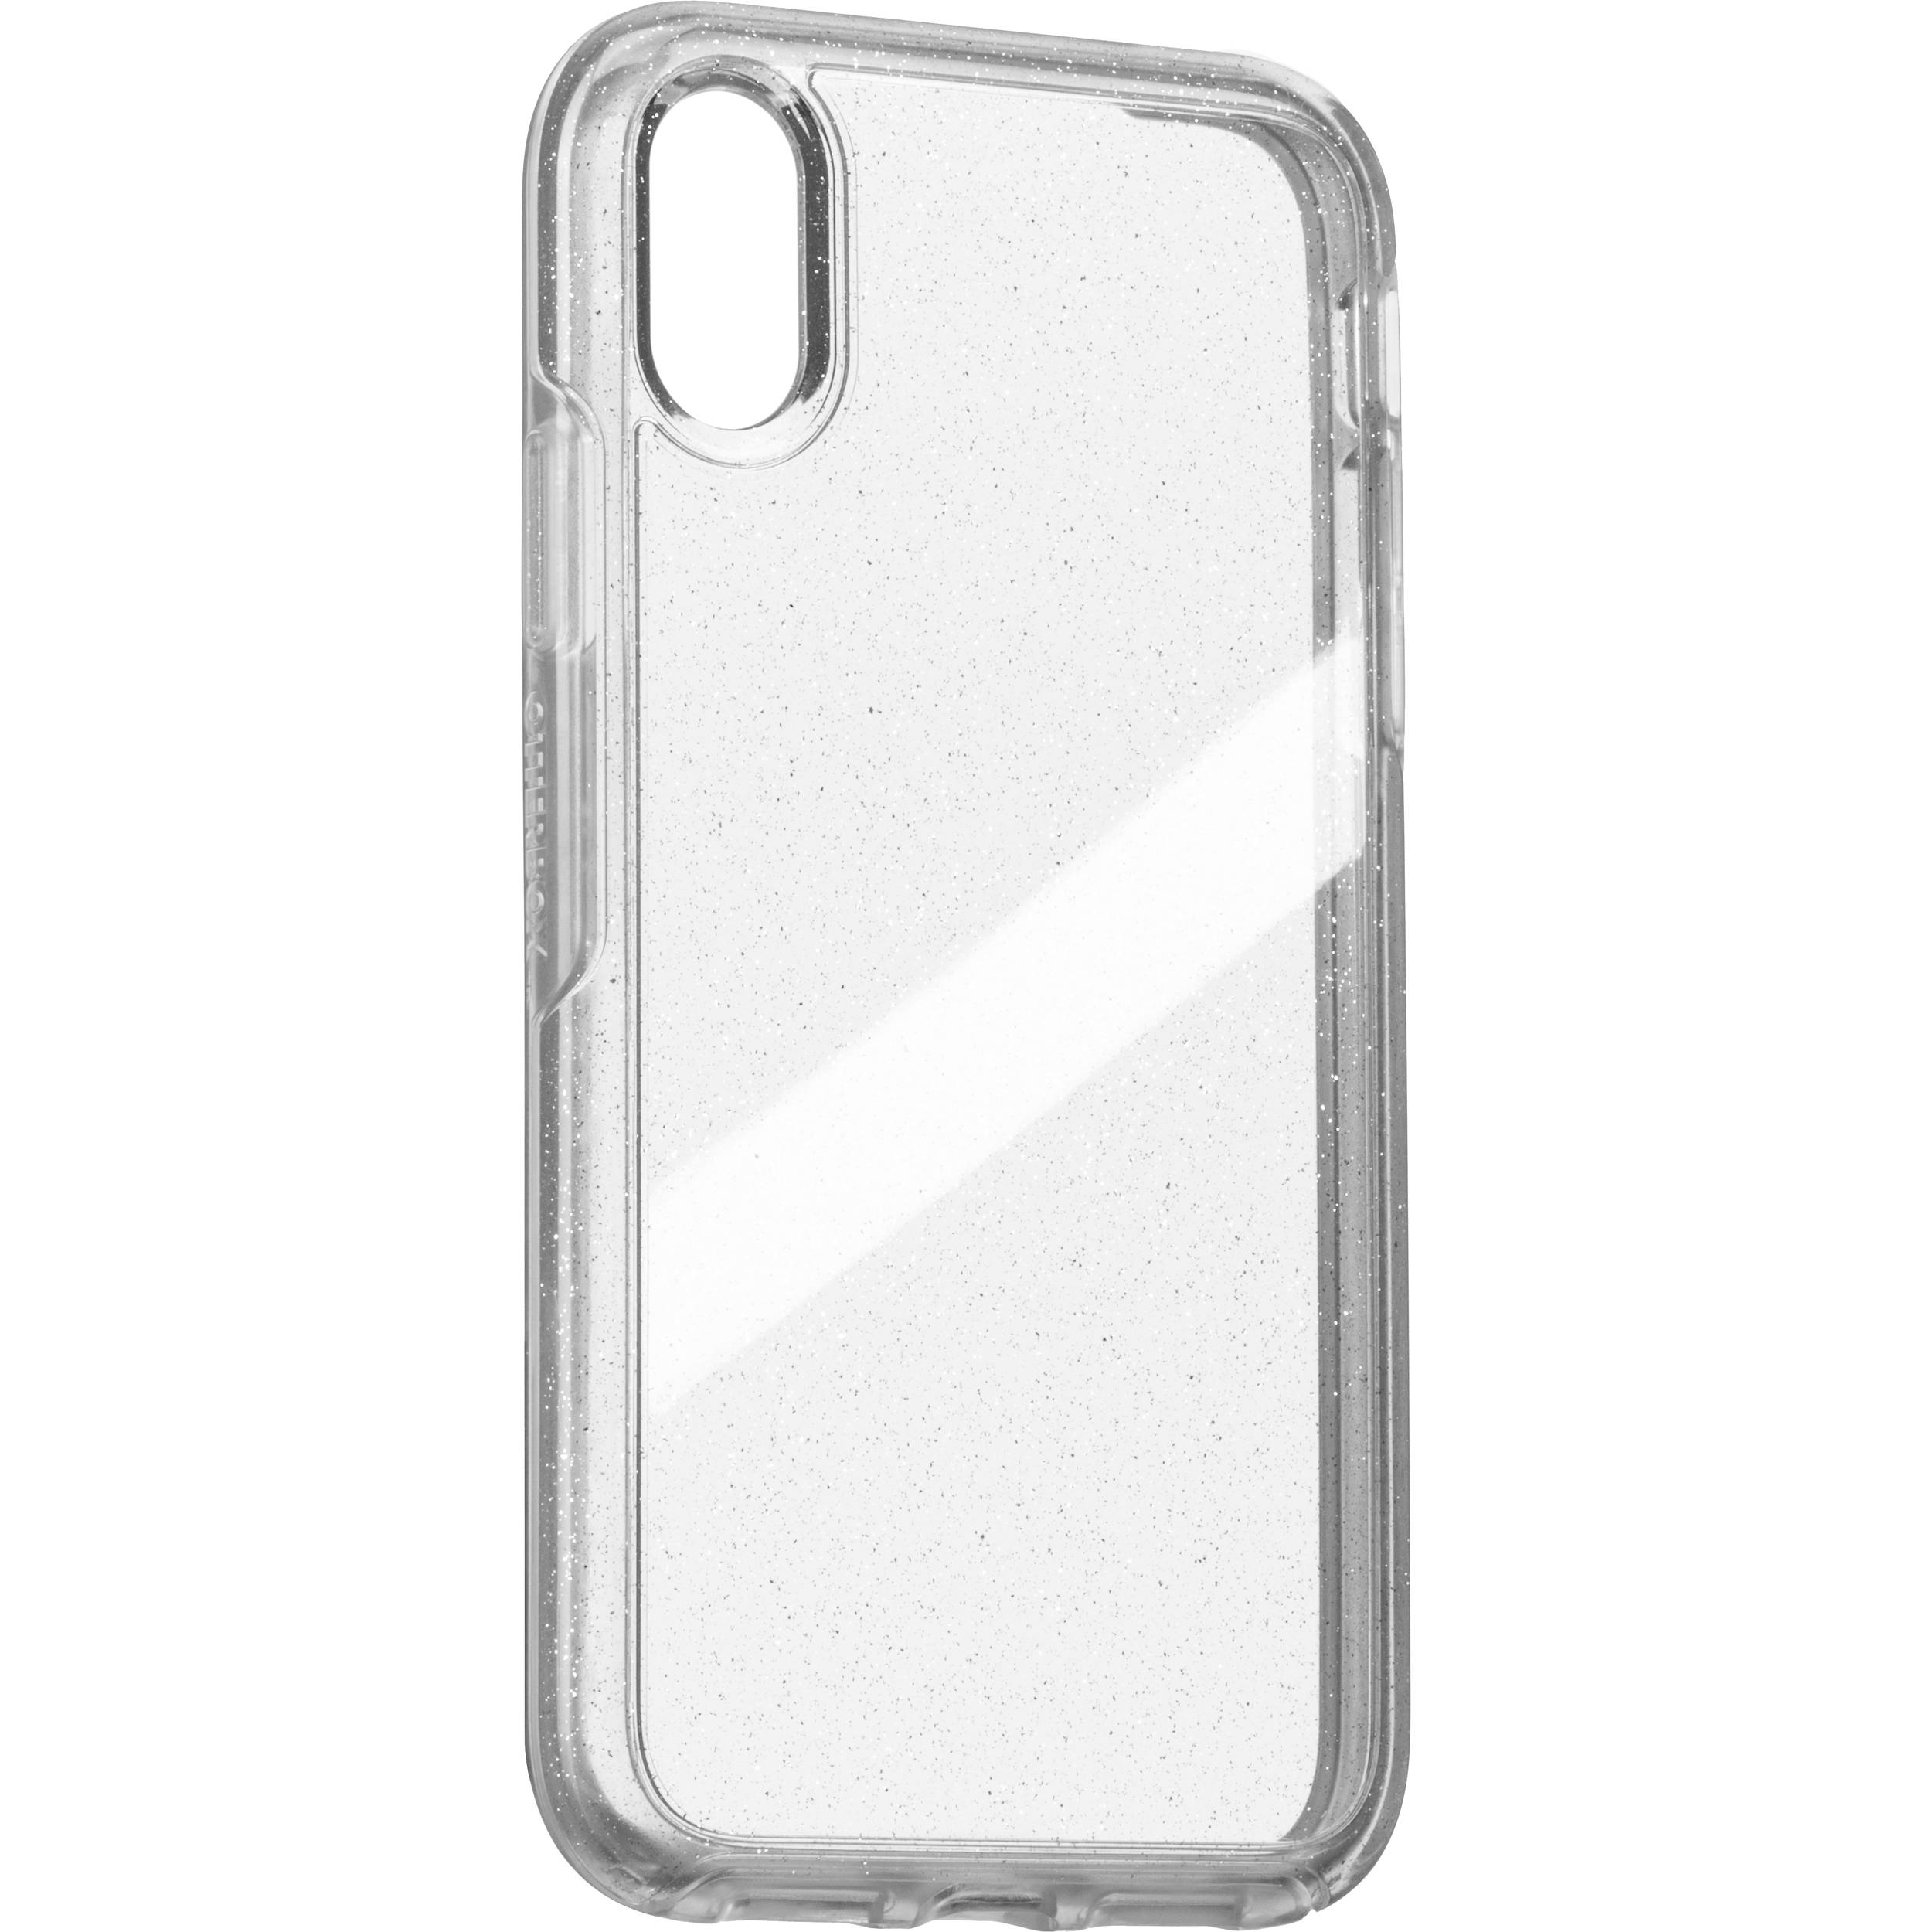 Otterbox Symmetry Series Clear Case For Iphone Xr 77 B Amp H